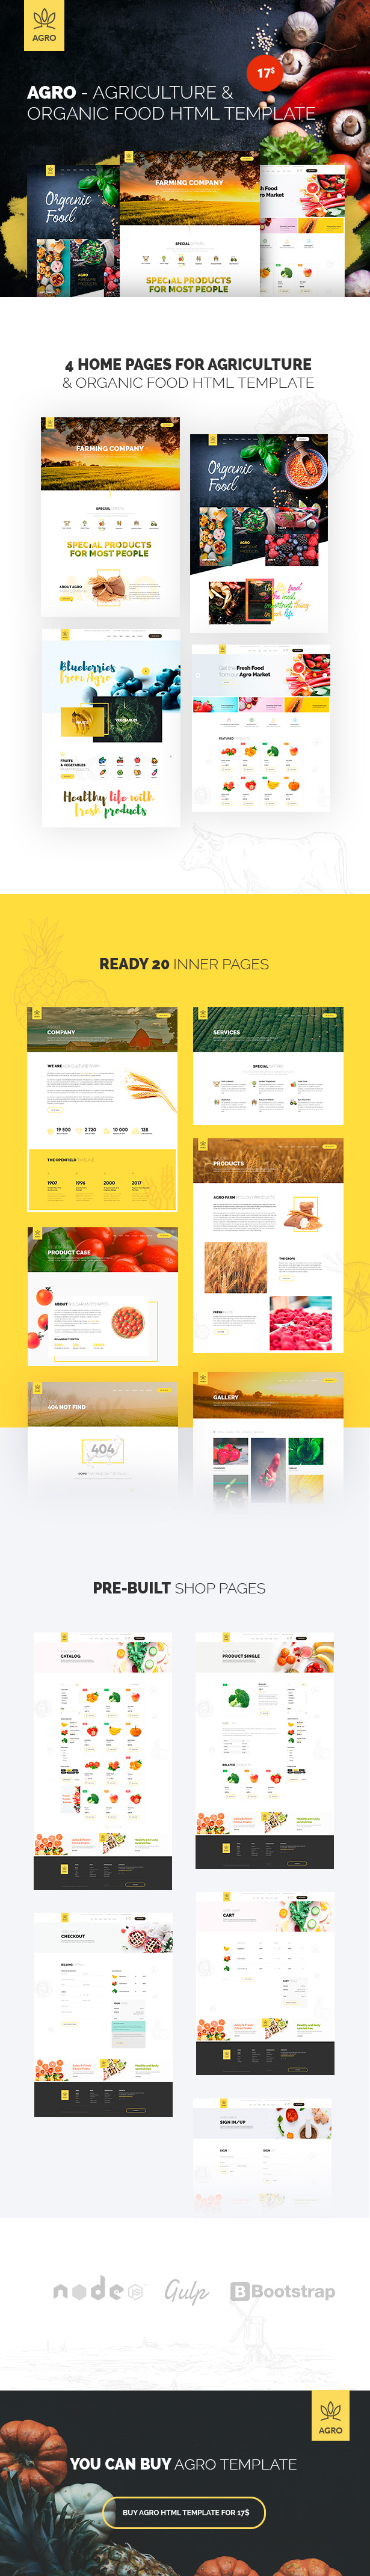 Agro - Agriculture & Organic Food HTML Template Pack - 2